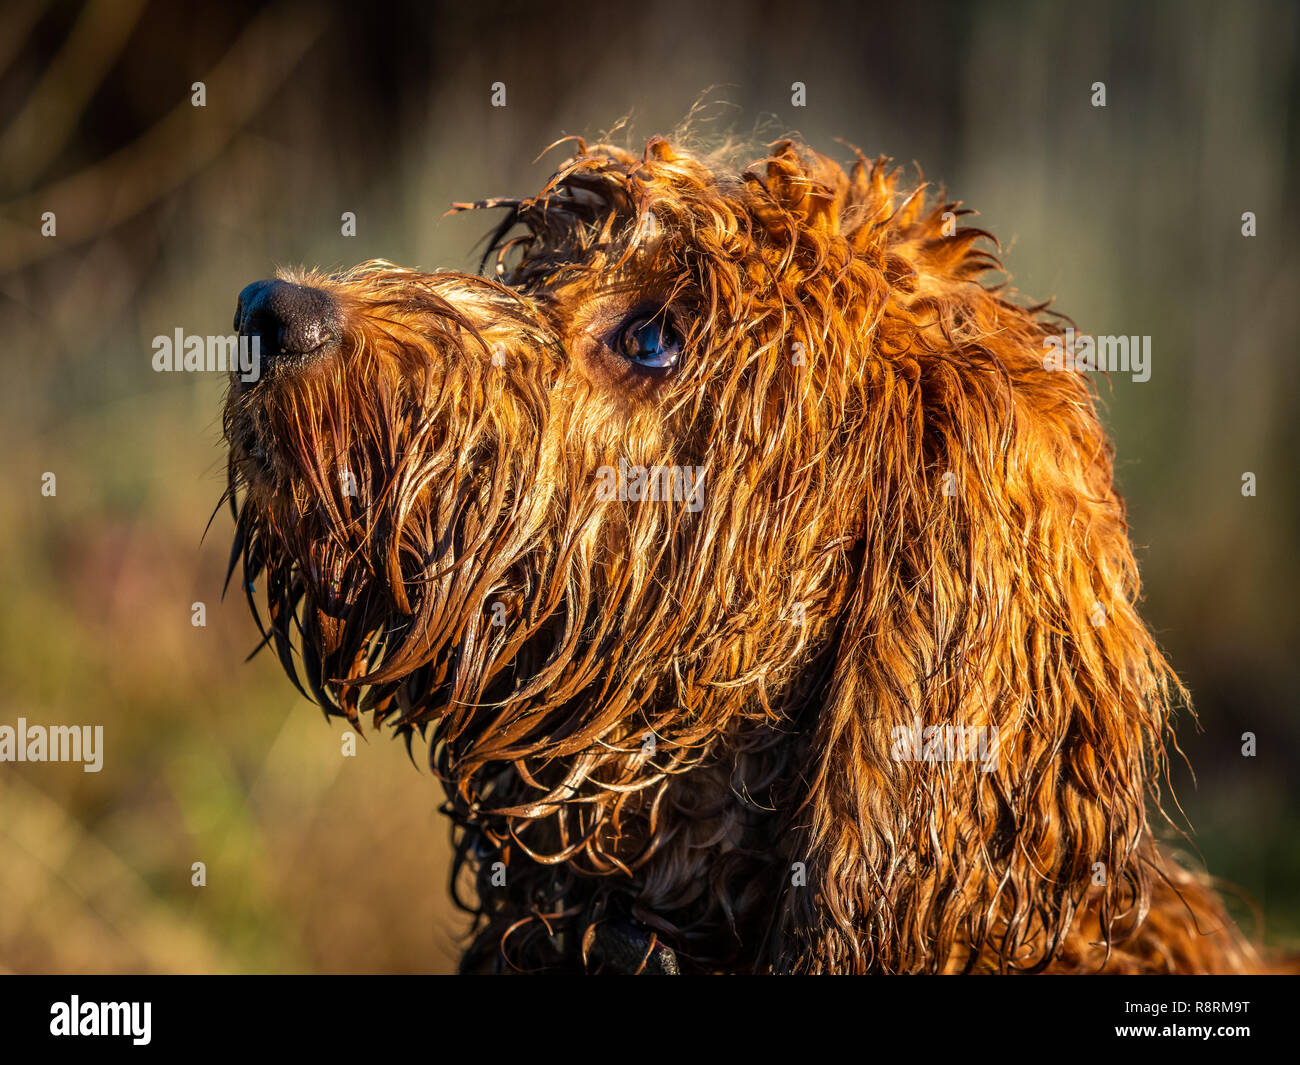 A very wet cockapoo puppy sitting attentively waititng on its owners commands - Stock Image